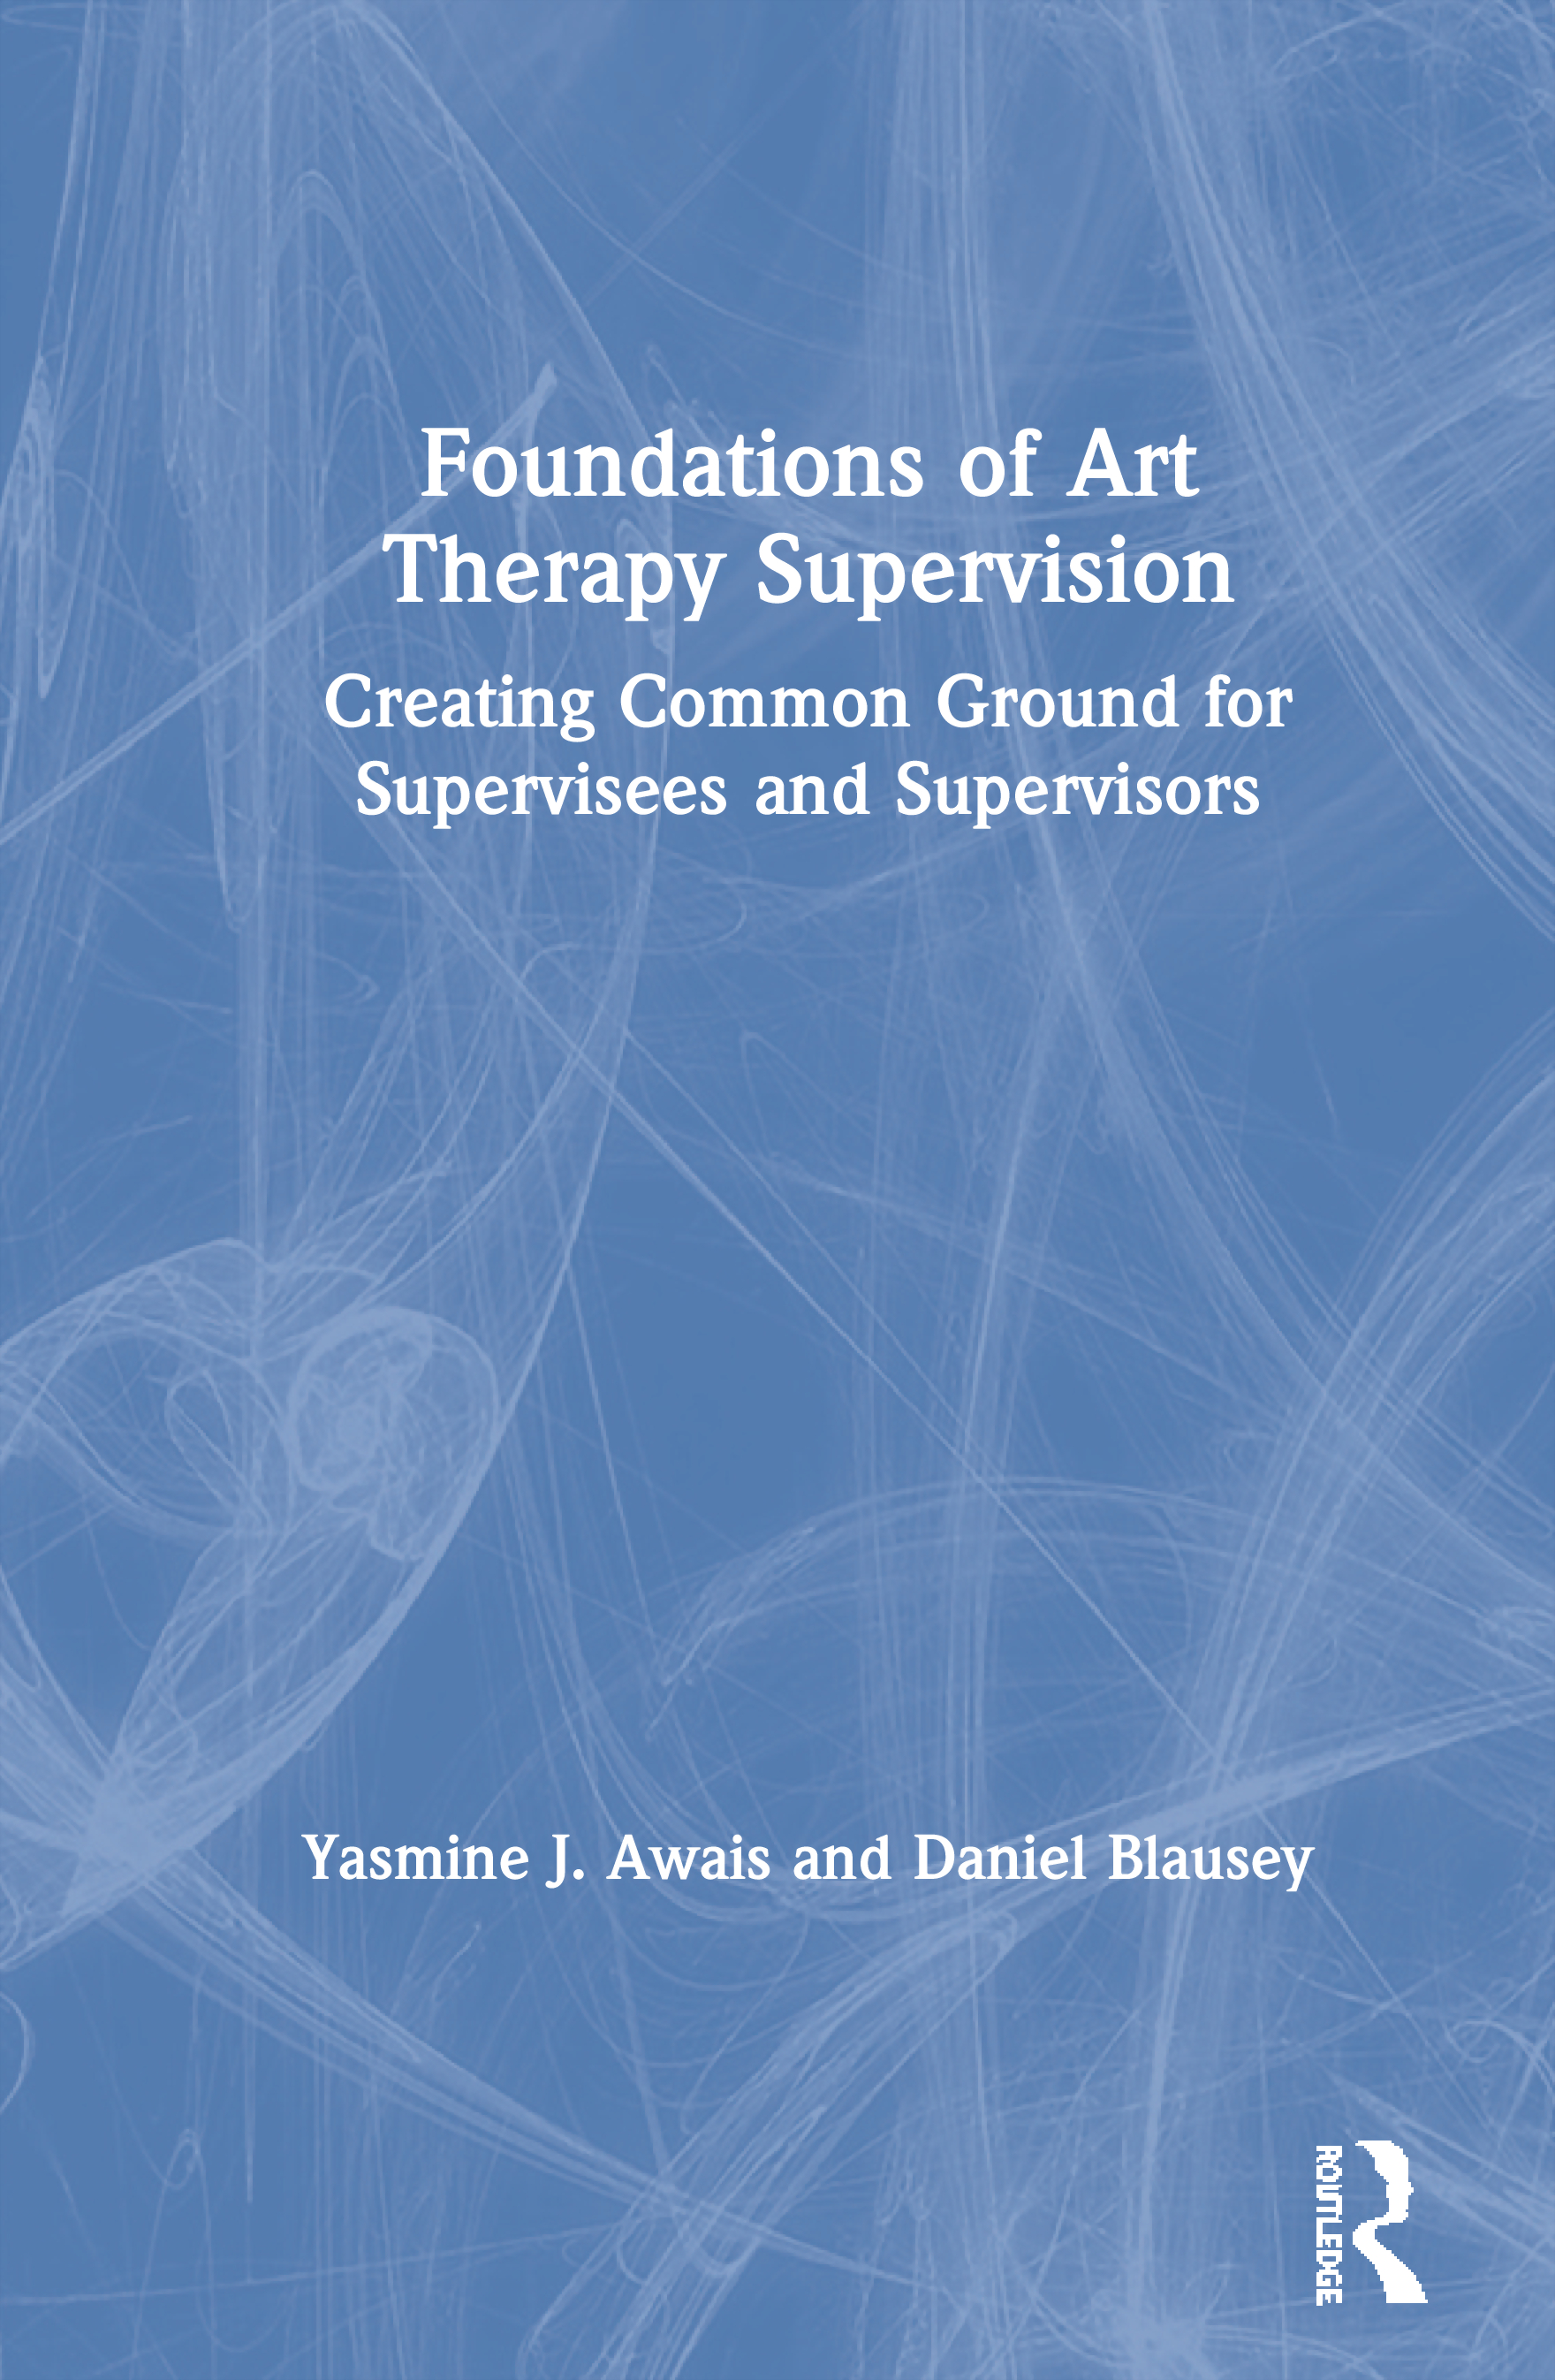 Foundations of Art Therapy Supervision